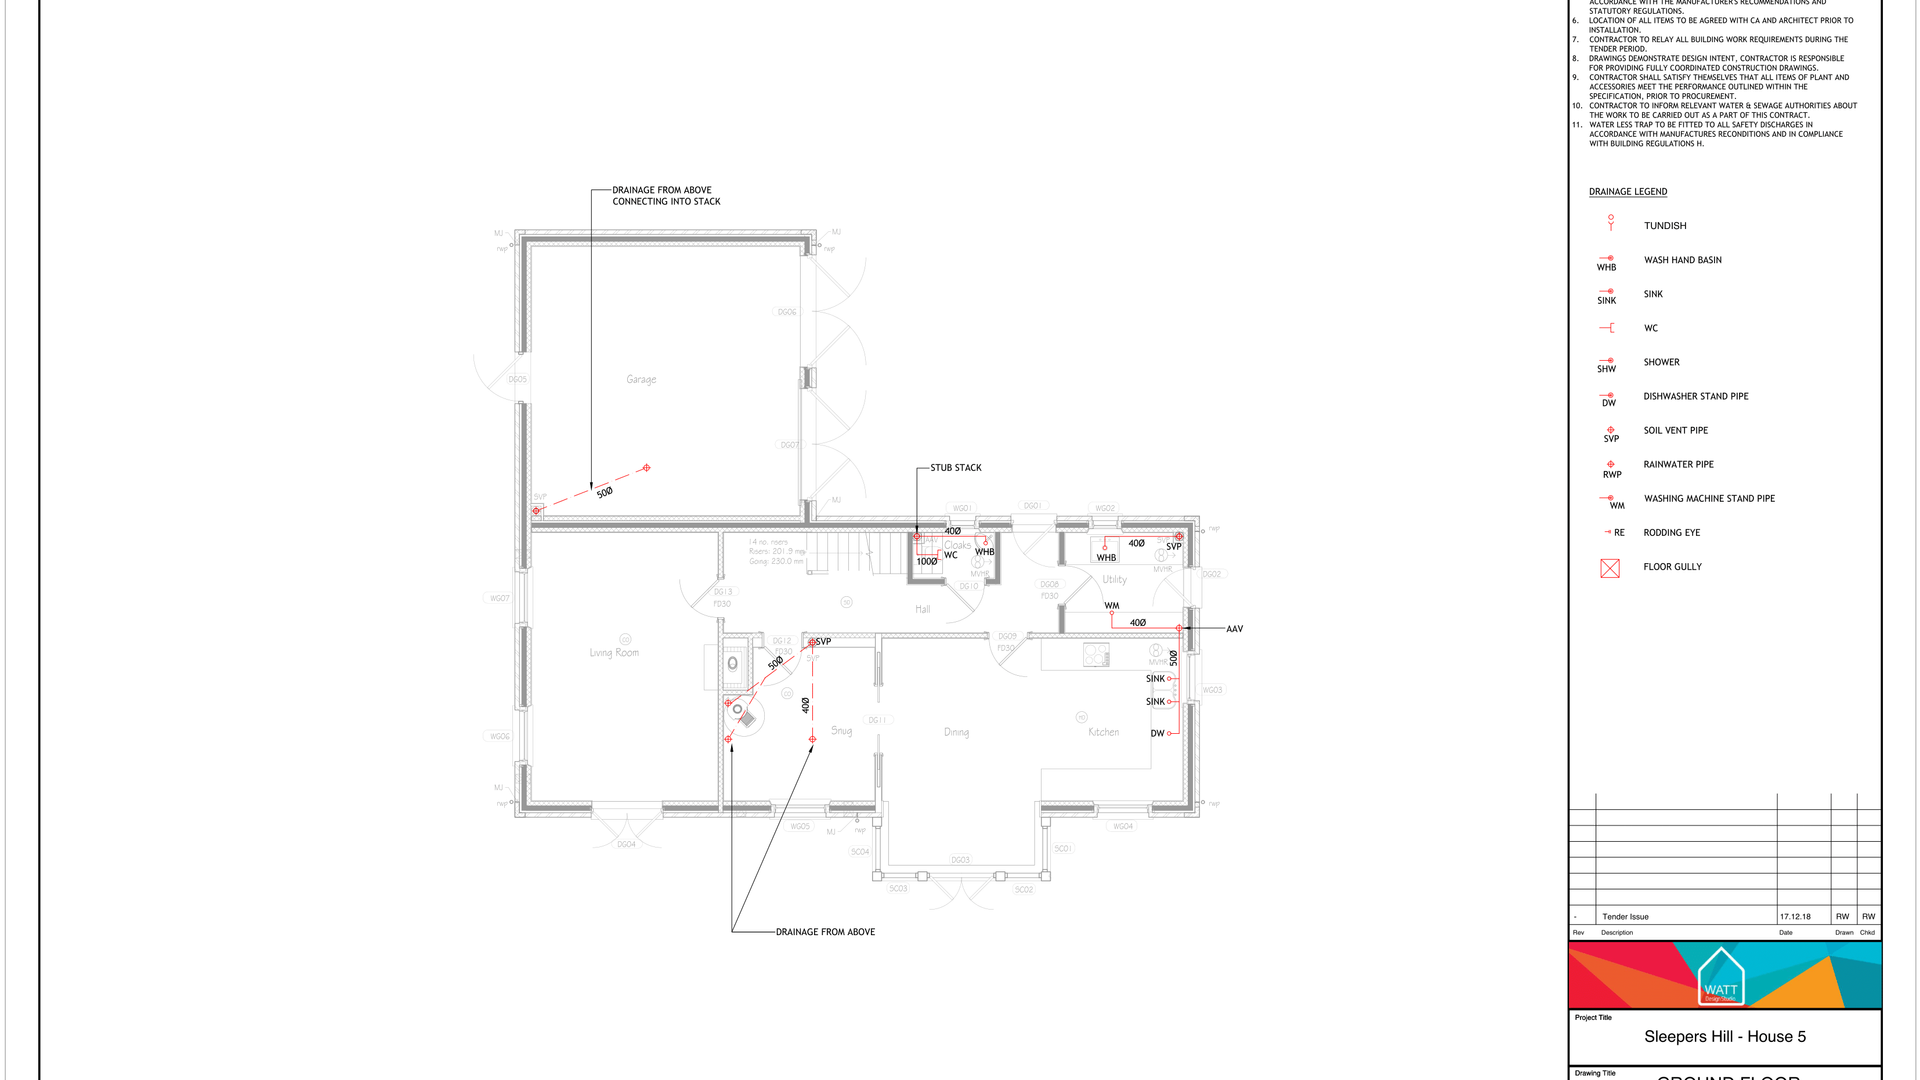 D V00 - Sleepers Hill - House 5 - Above